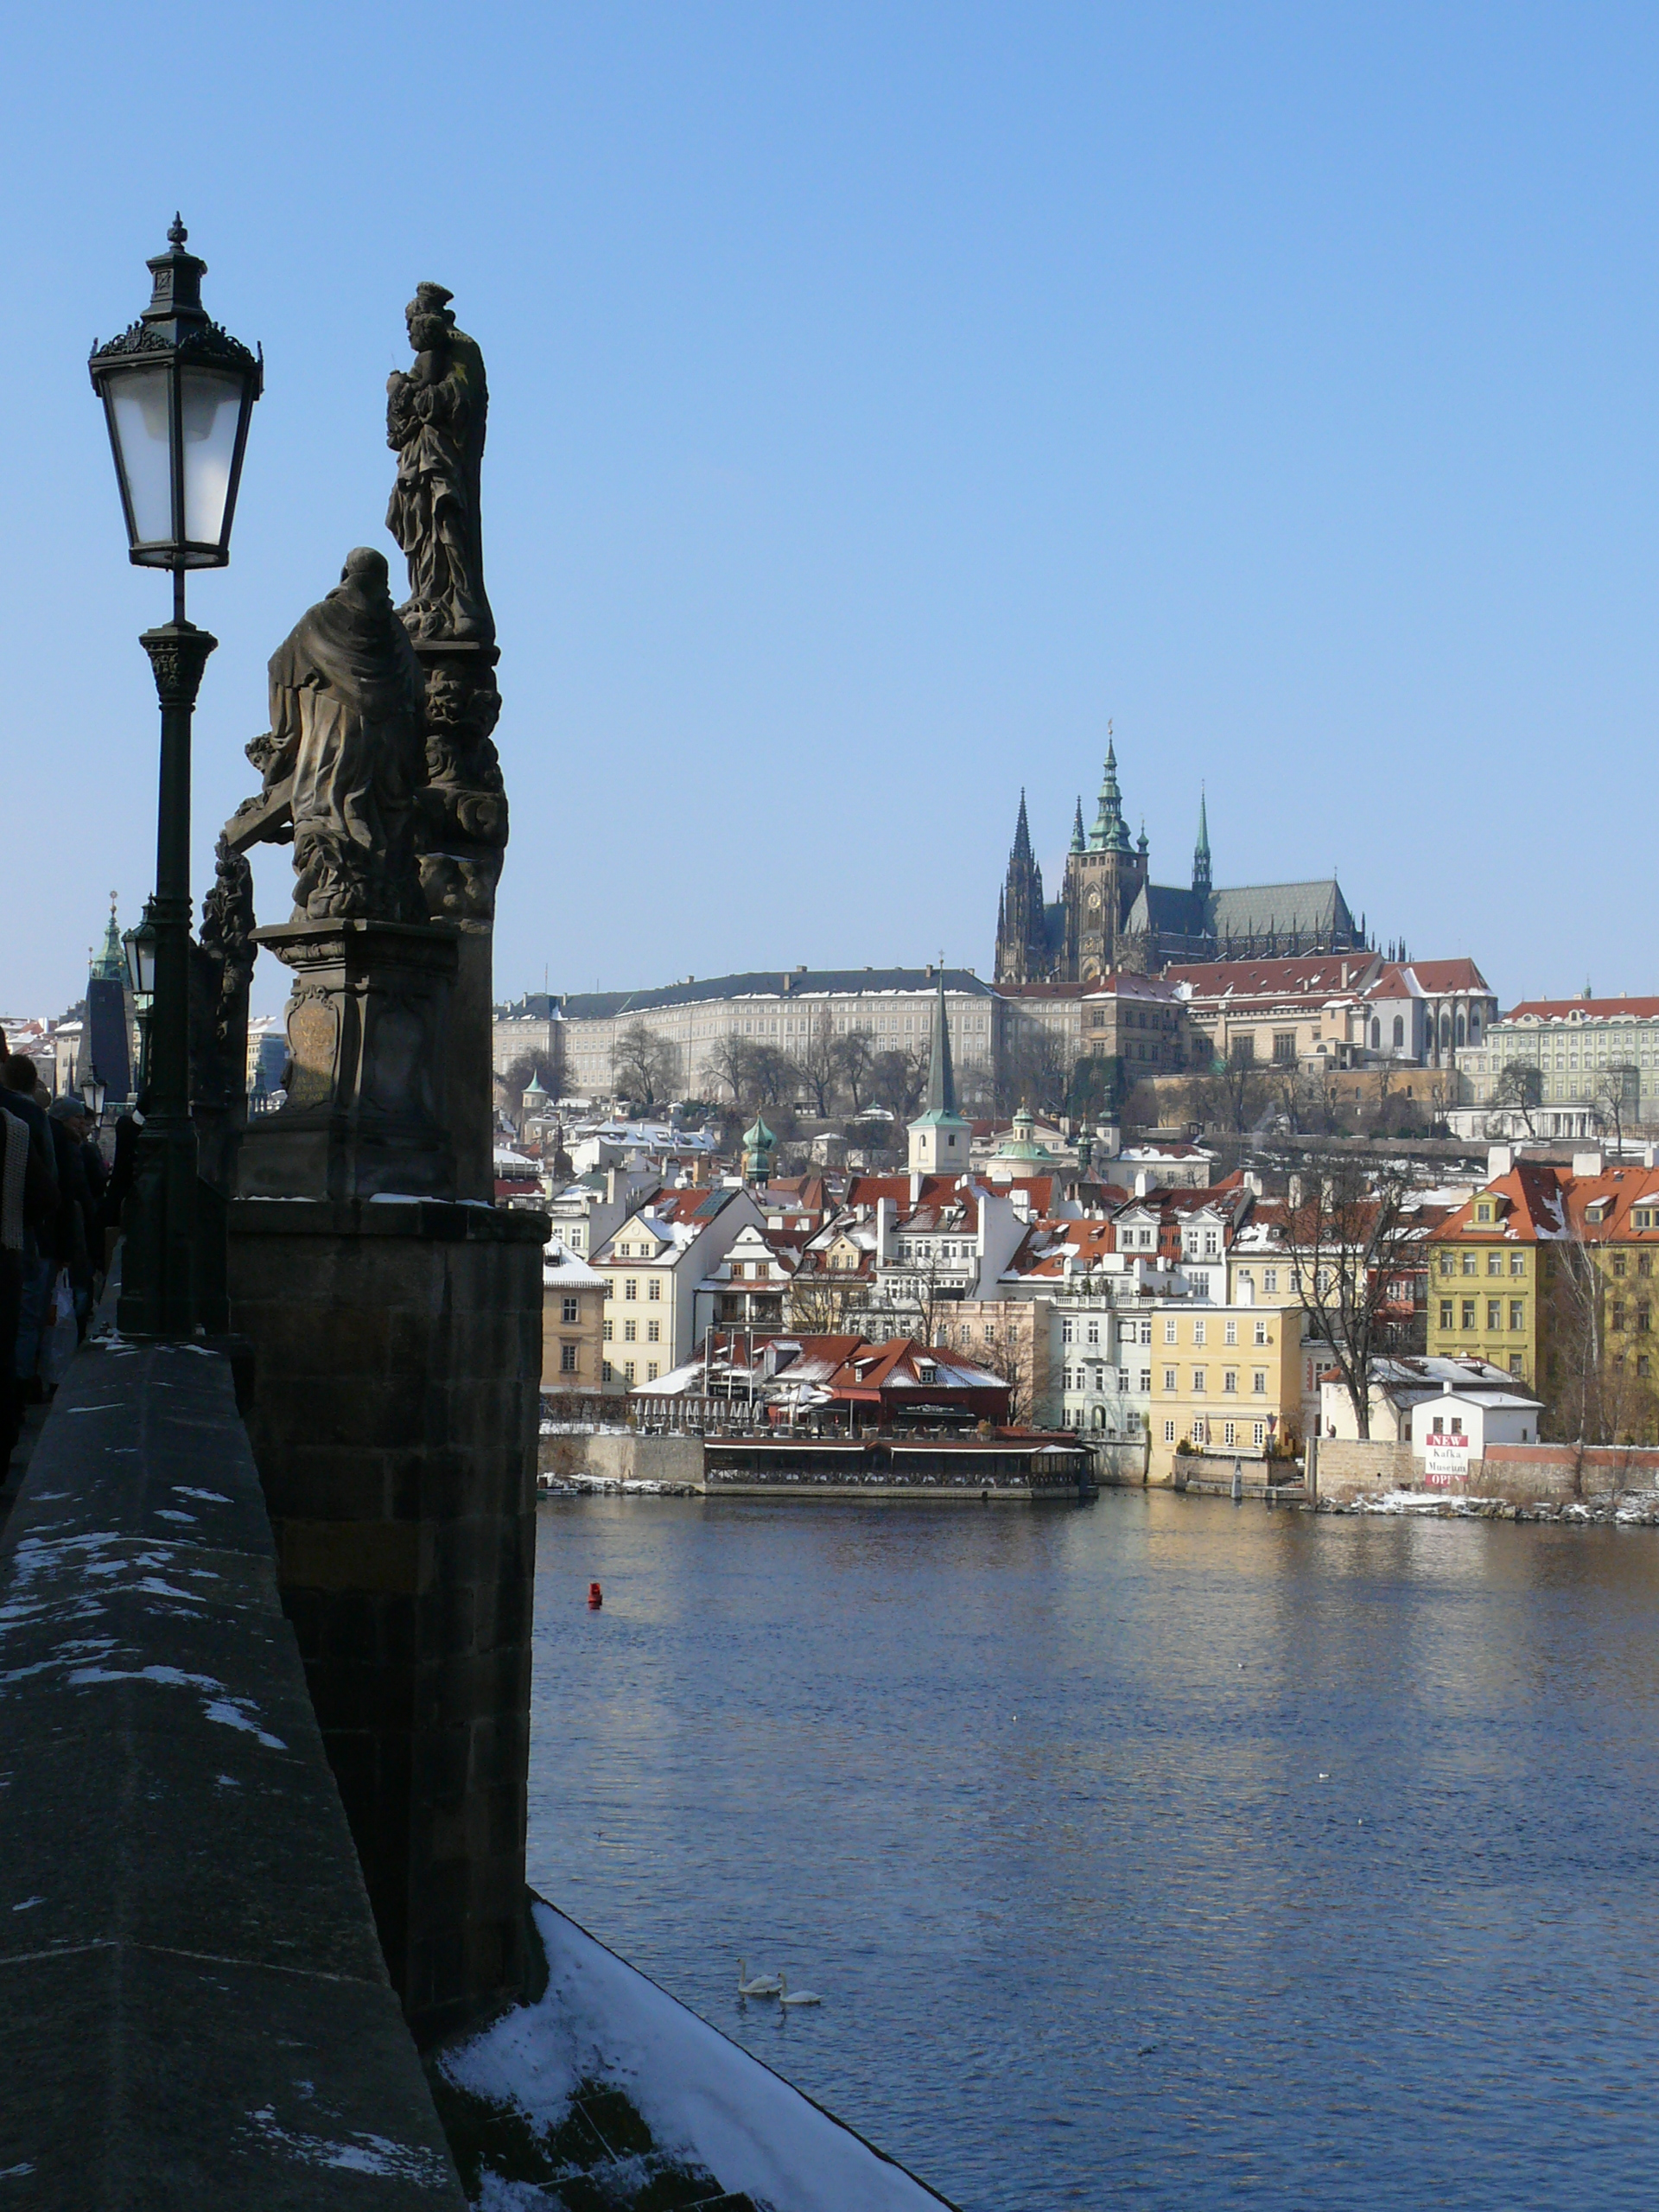 Charles Bridge was commissioned in 1357 to replace the earlier bridge which collapsed in a flood in 1342. It was completed in about 1400. The bridge has many statues and monuments although most of these are now copies of the originals.